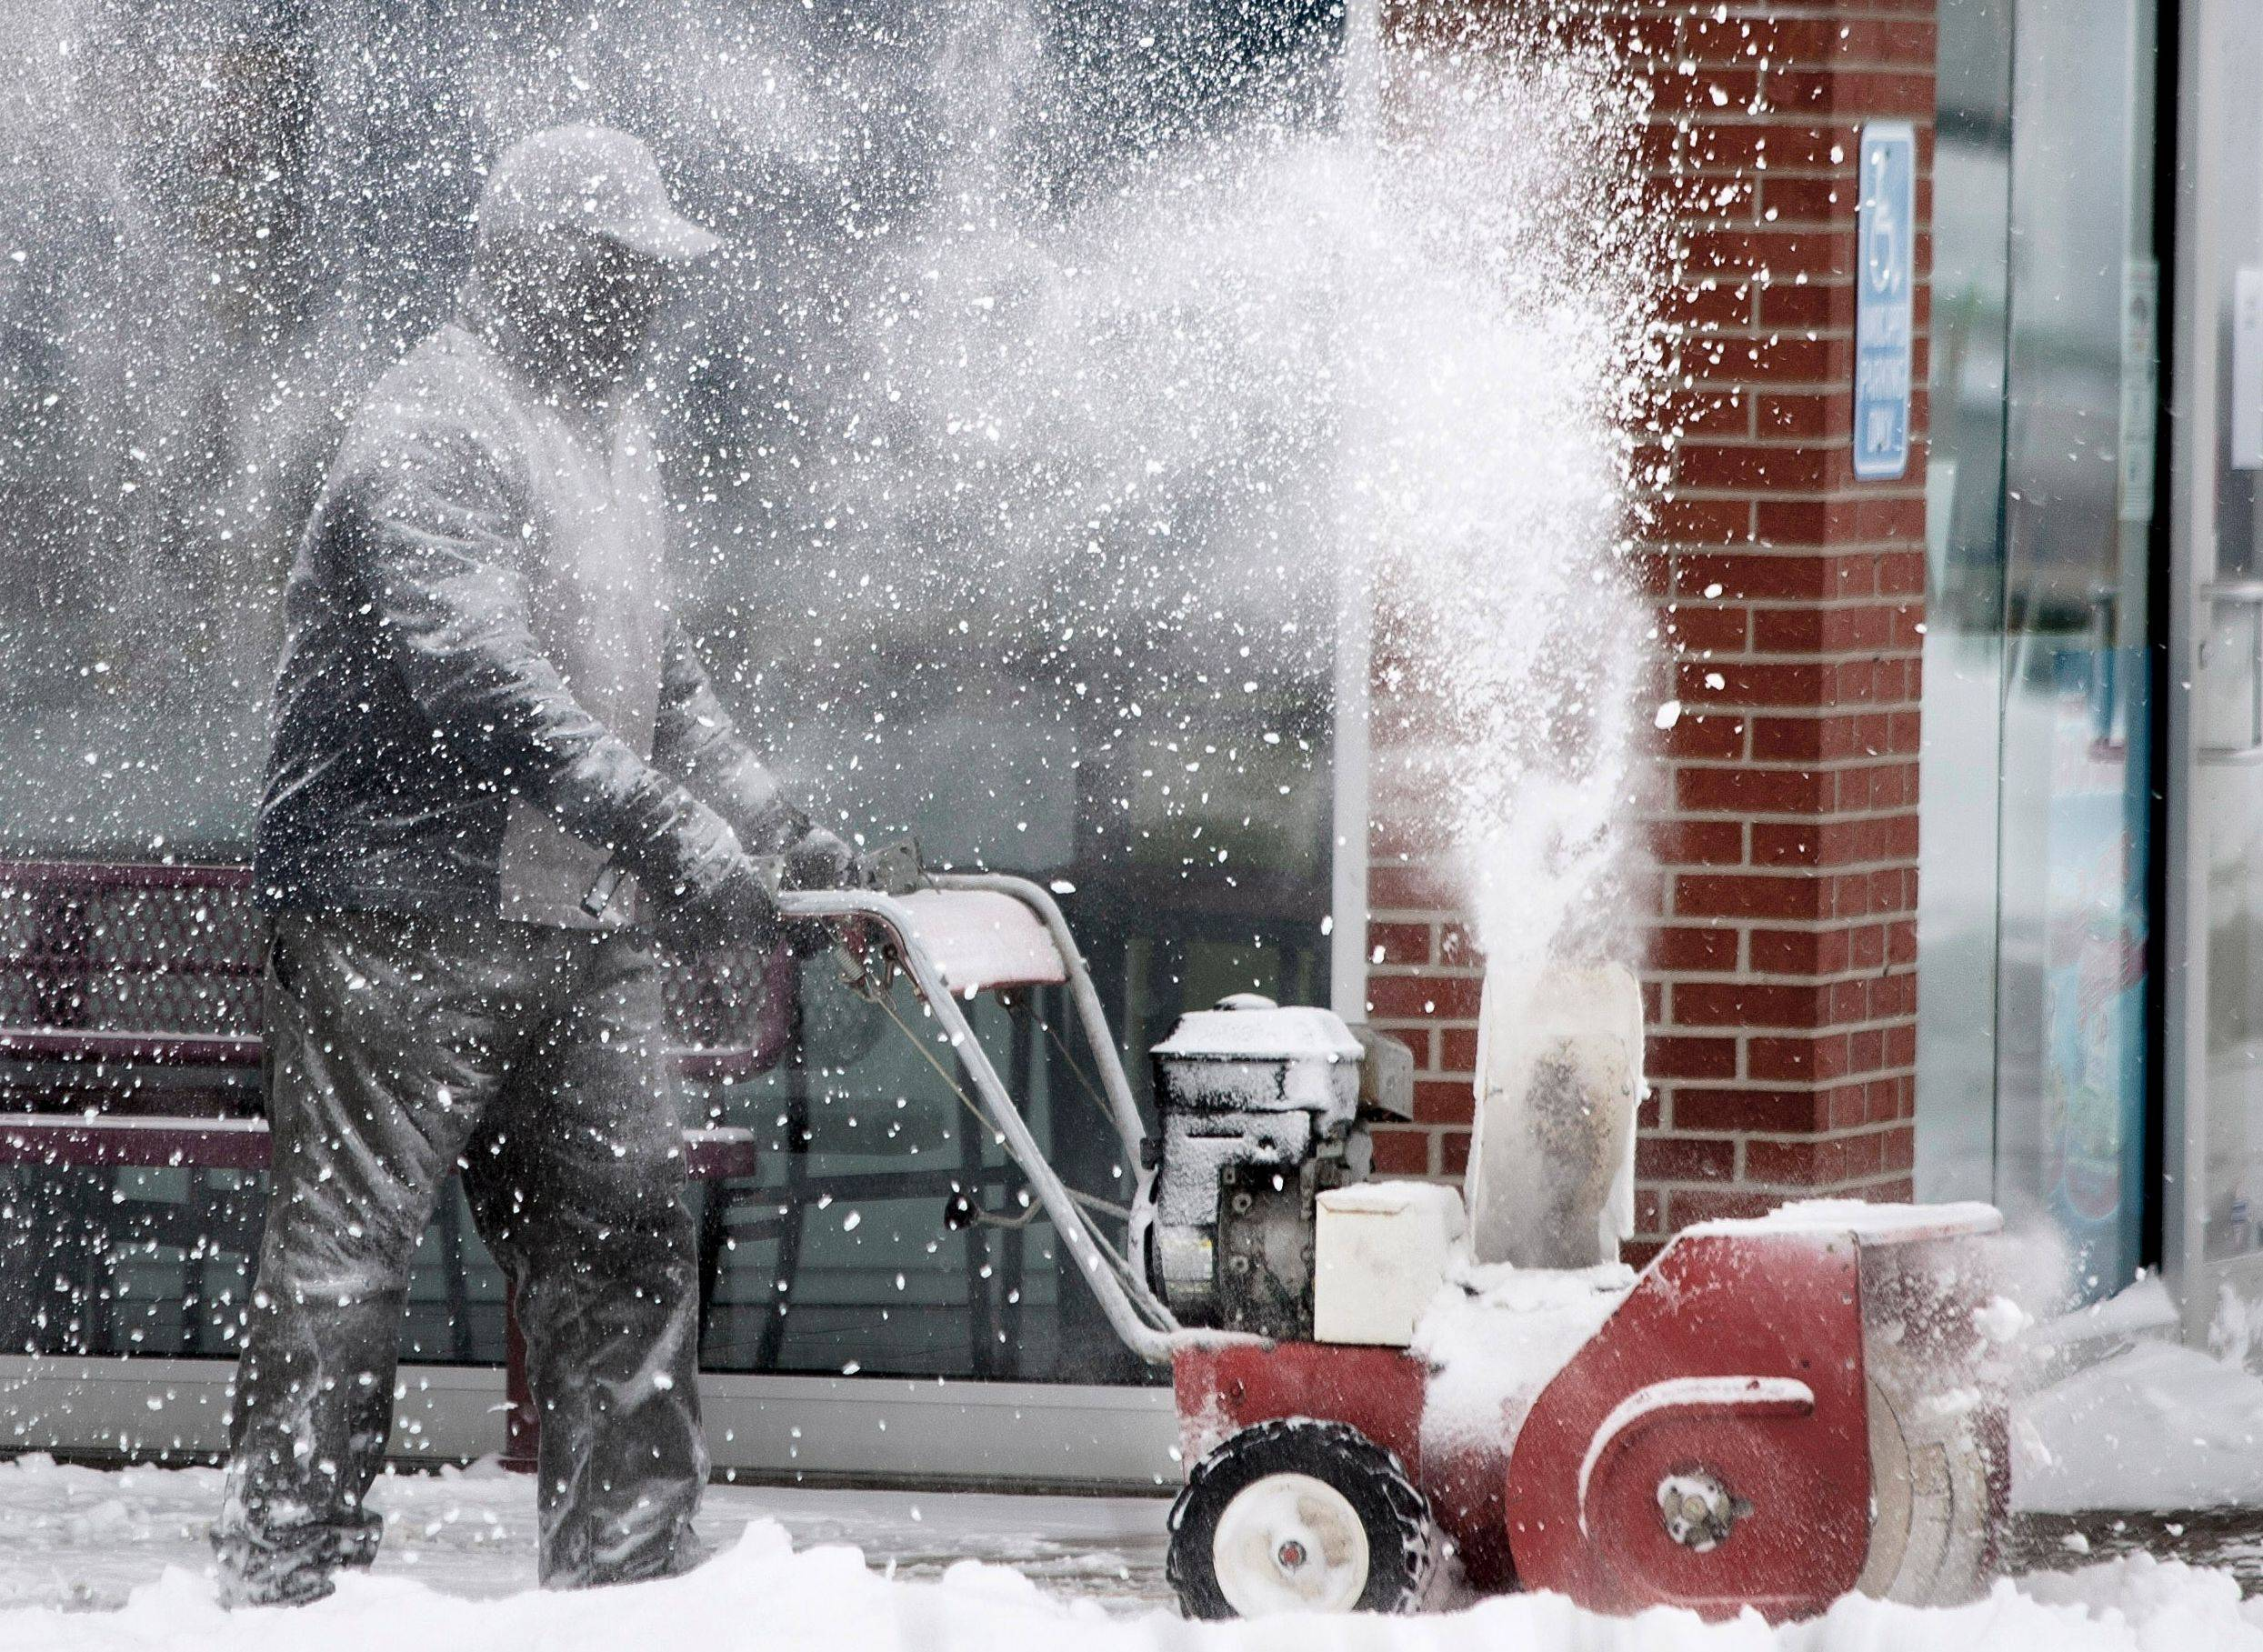 While covering himself with snow, a man uses a snow thrower to clear the sidewalk of a business during the morning hours Thursday, Feb. 21, 2013 in Topeka, Kan. Kansas was the epicenter of the winter storm, with parts of the state buried under 14 inches of powdery snow, but winter storm warnings stretched from eastern Colorado through Illinois.